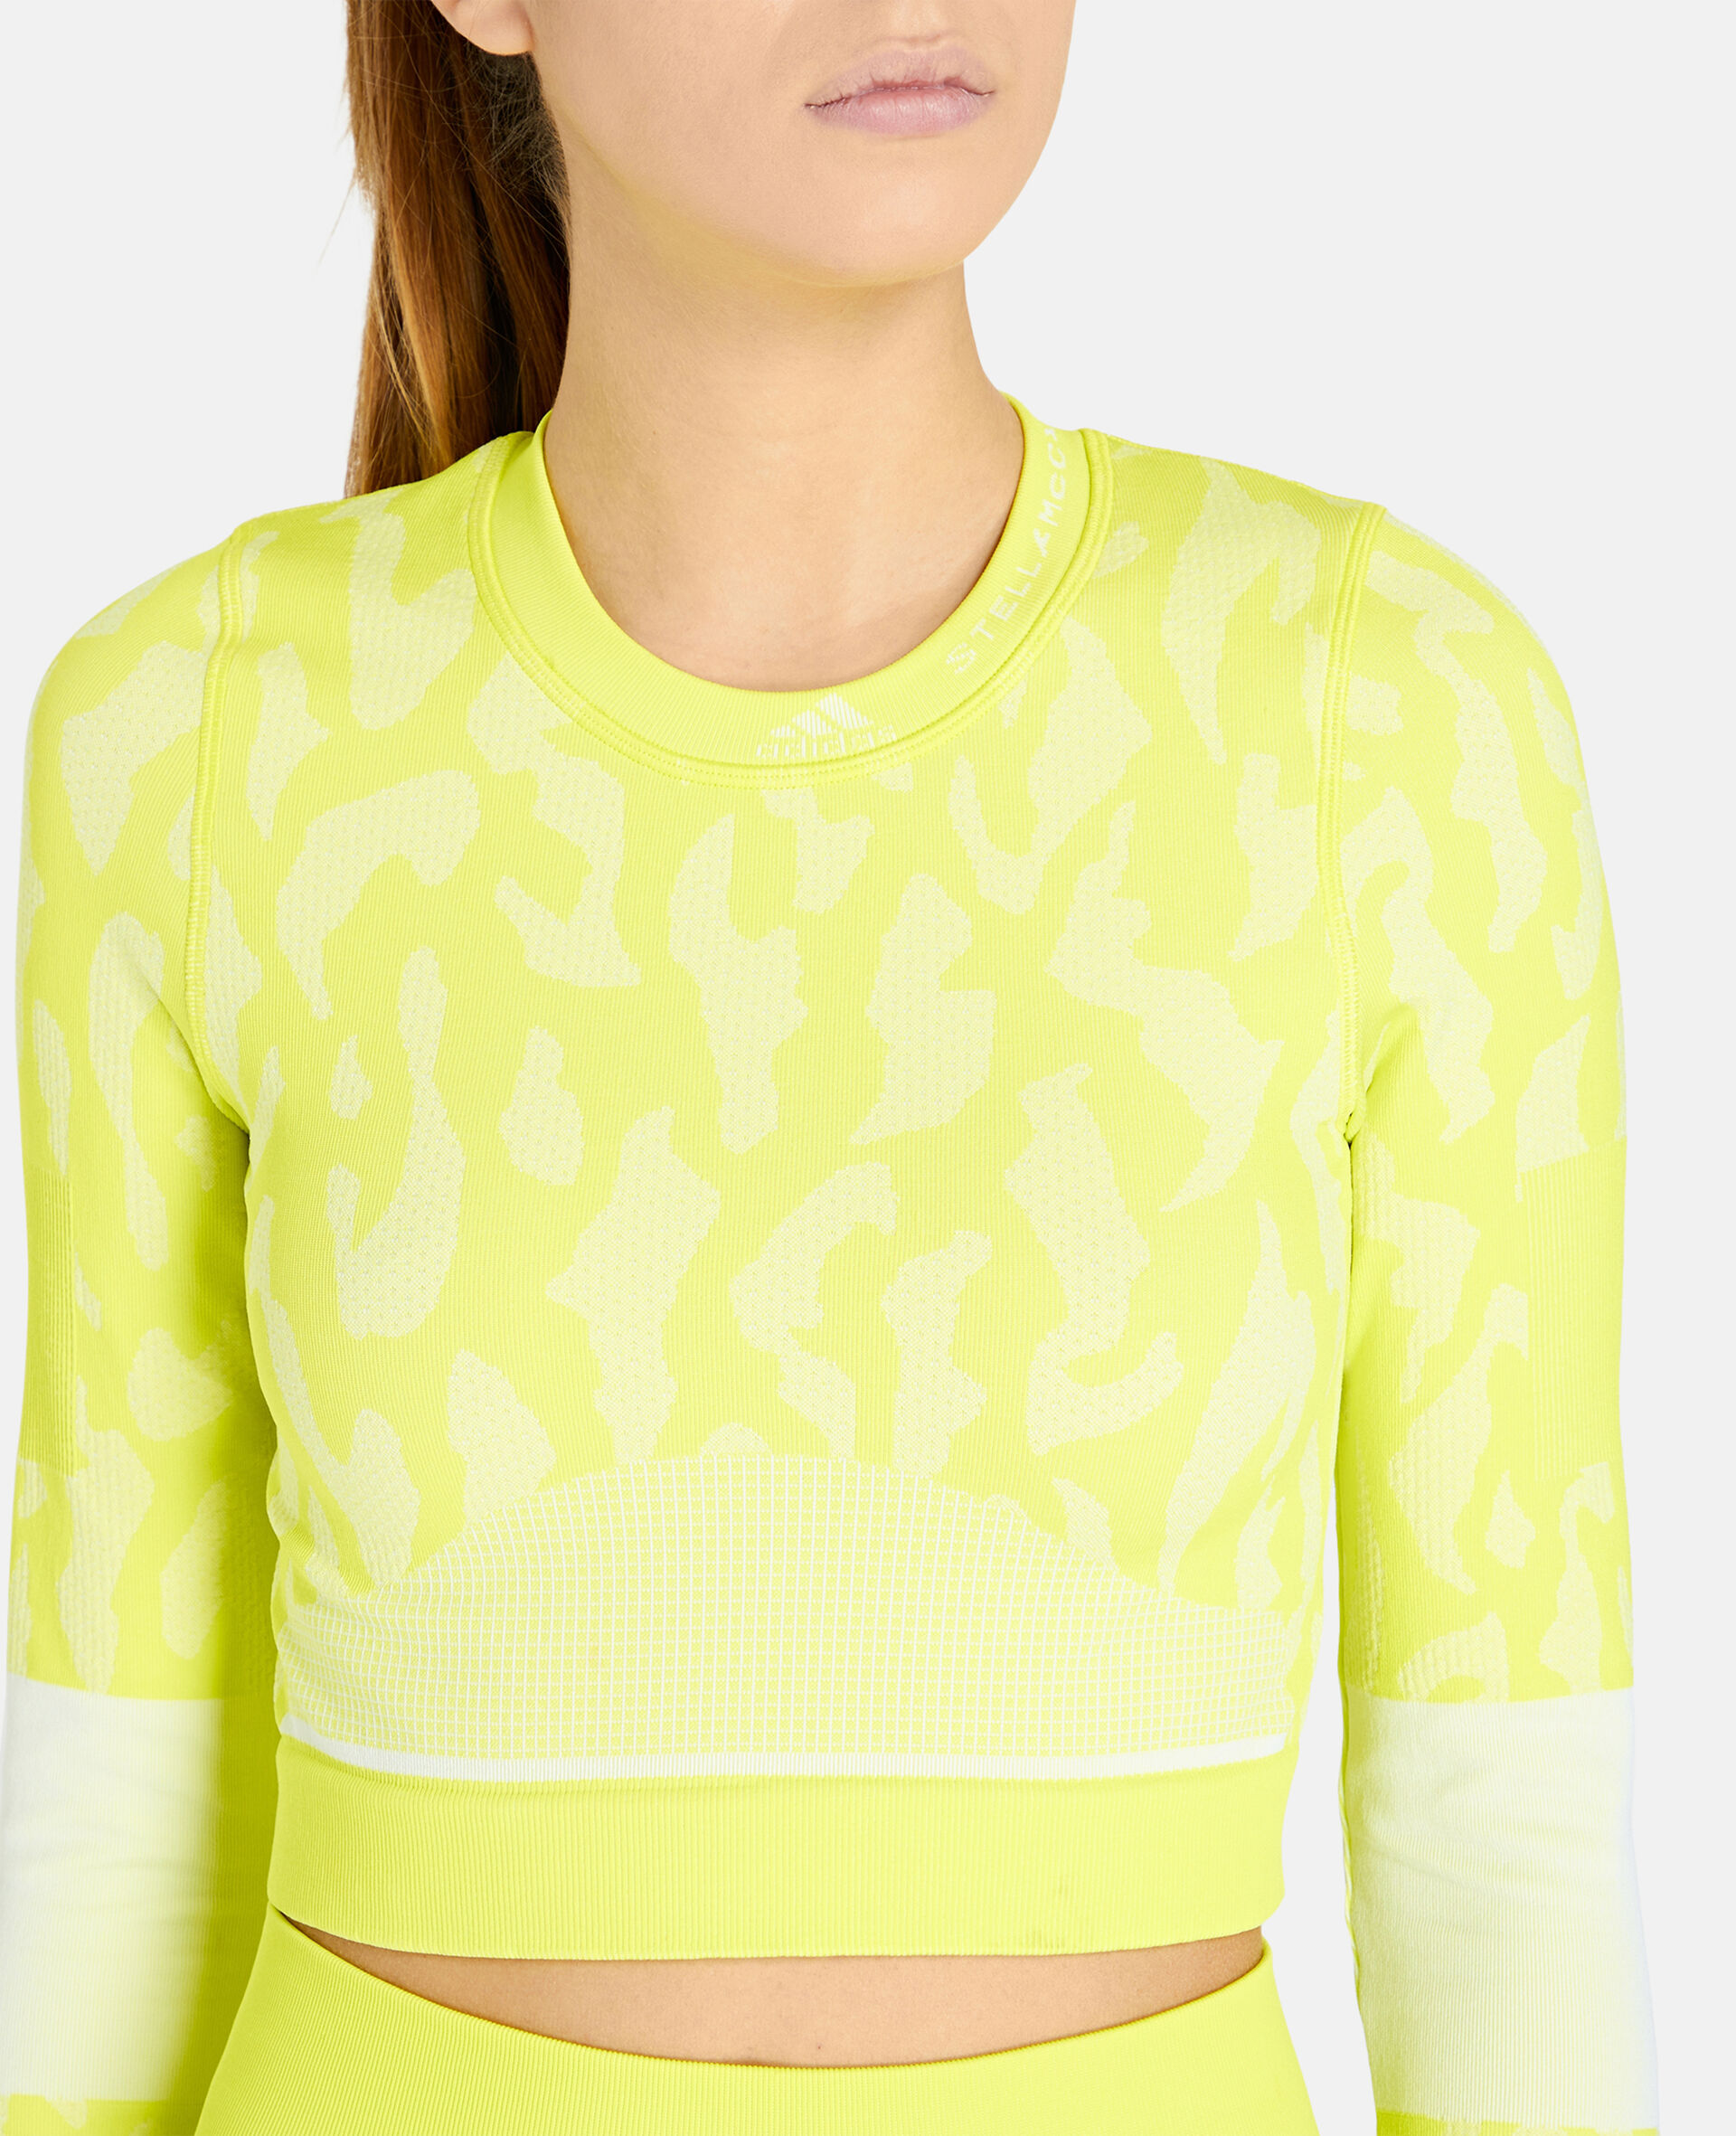 TruePurpose Seamless Training Crop Top -Yellow-large image number 3